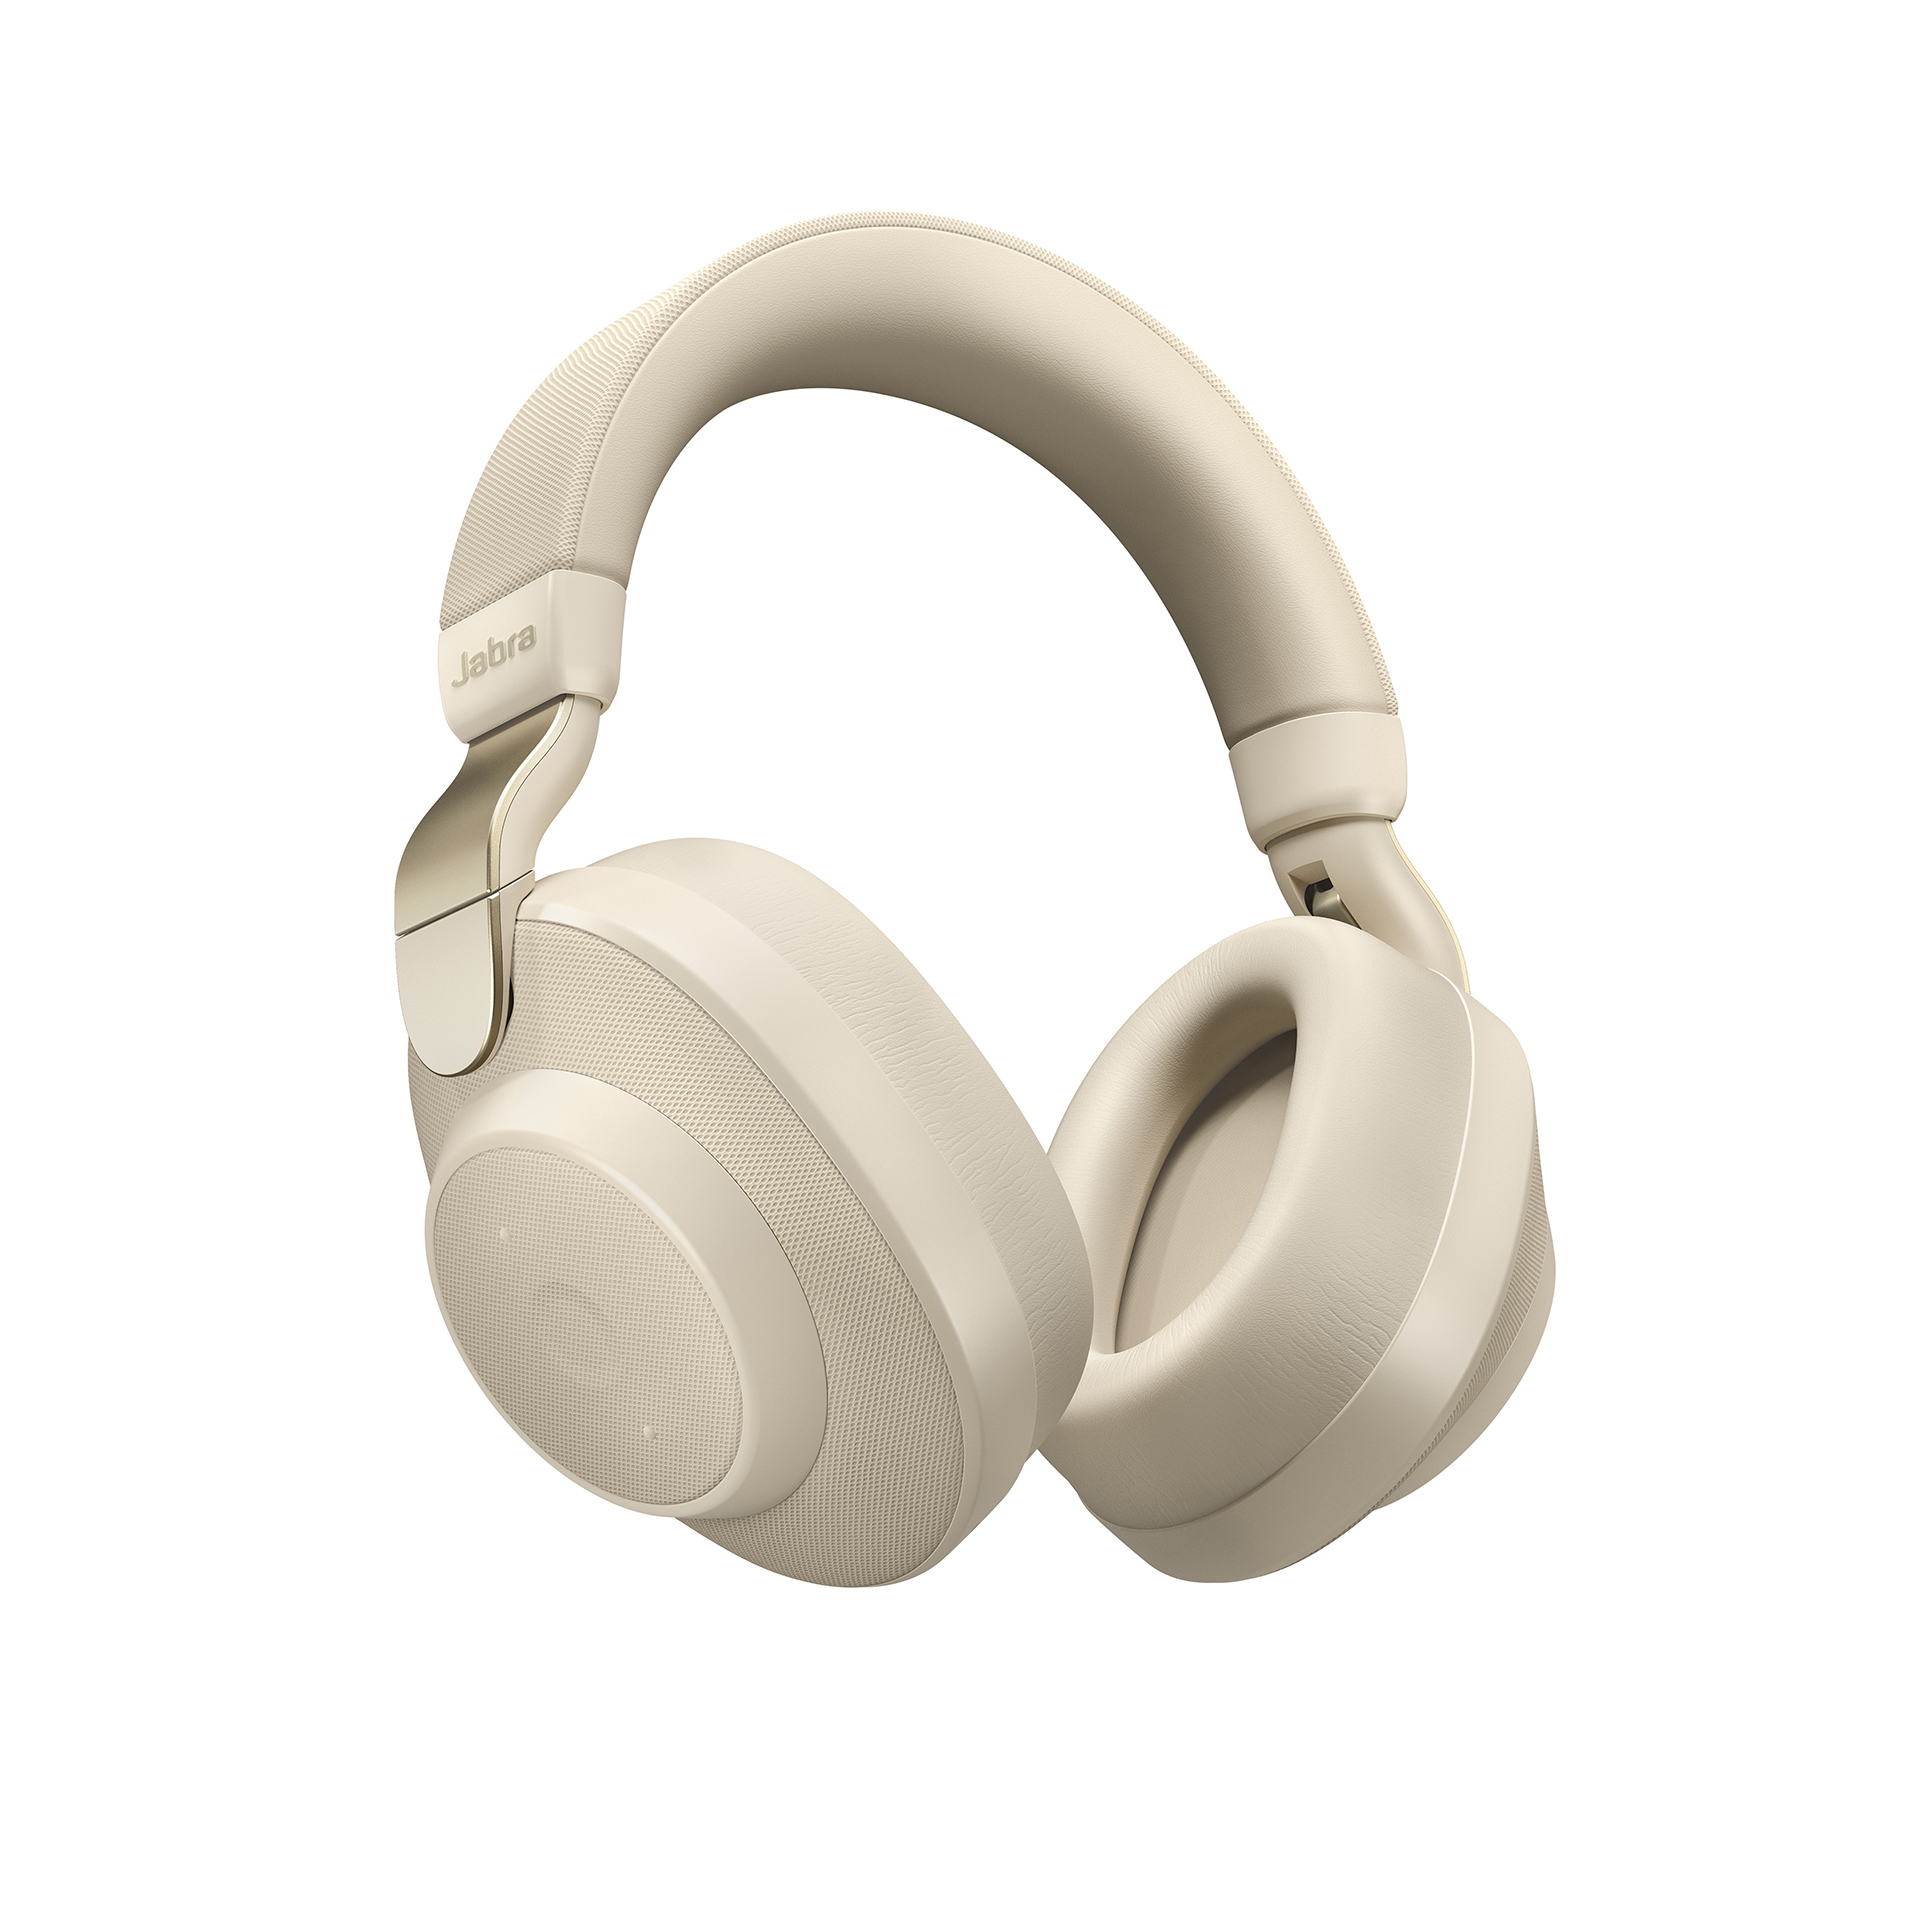 Jabra Elite 85h Headset Head-band Beige